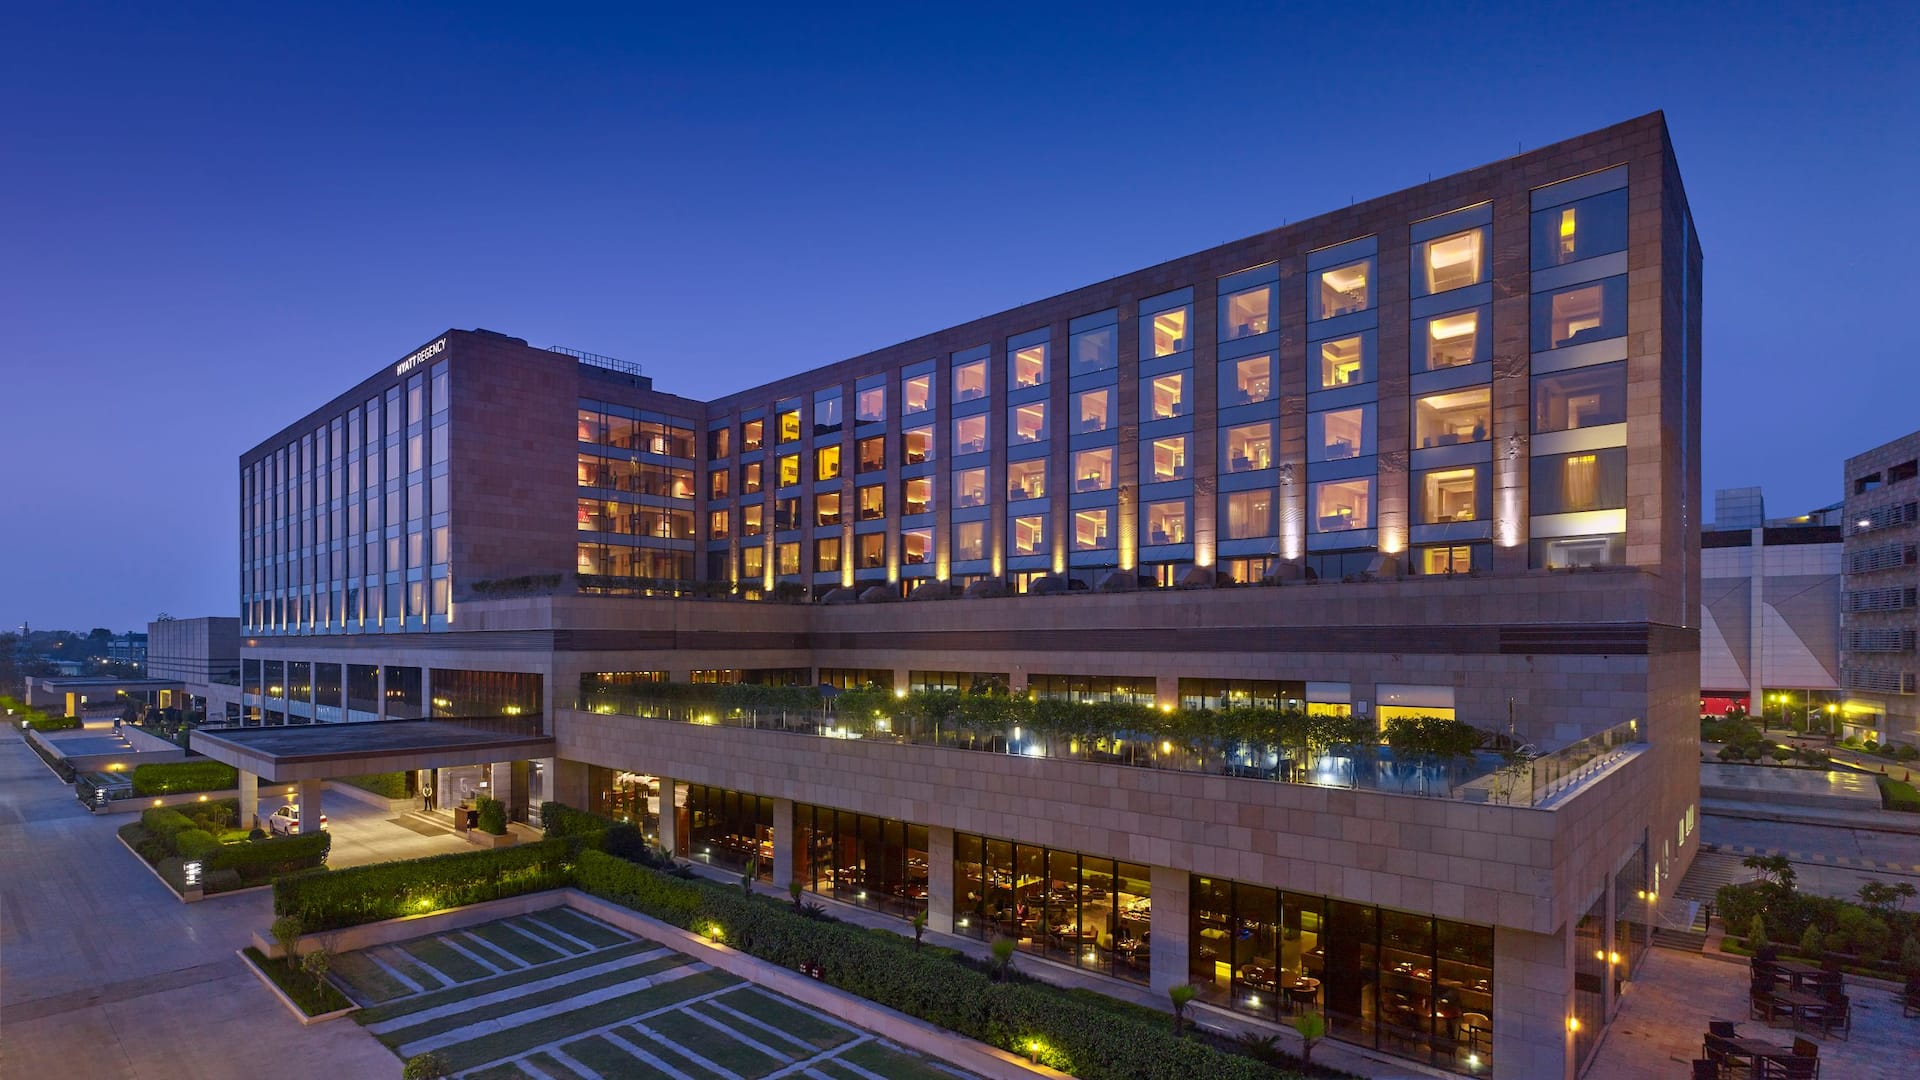 Facade of Hyatt Regency Chandigarh